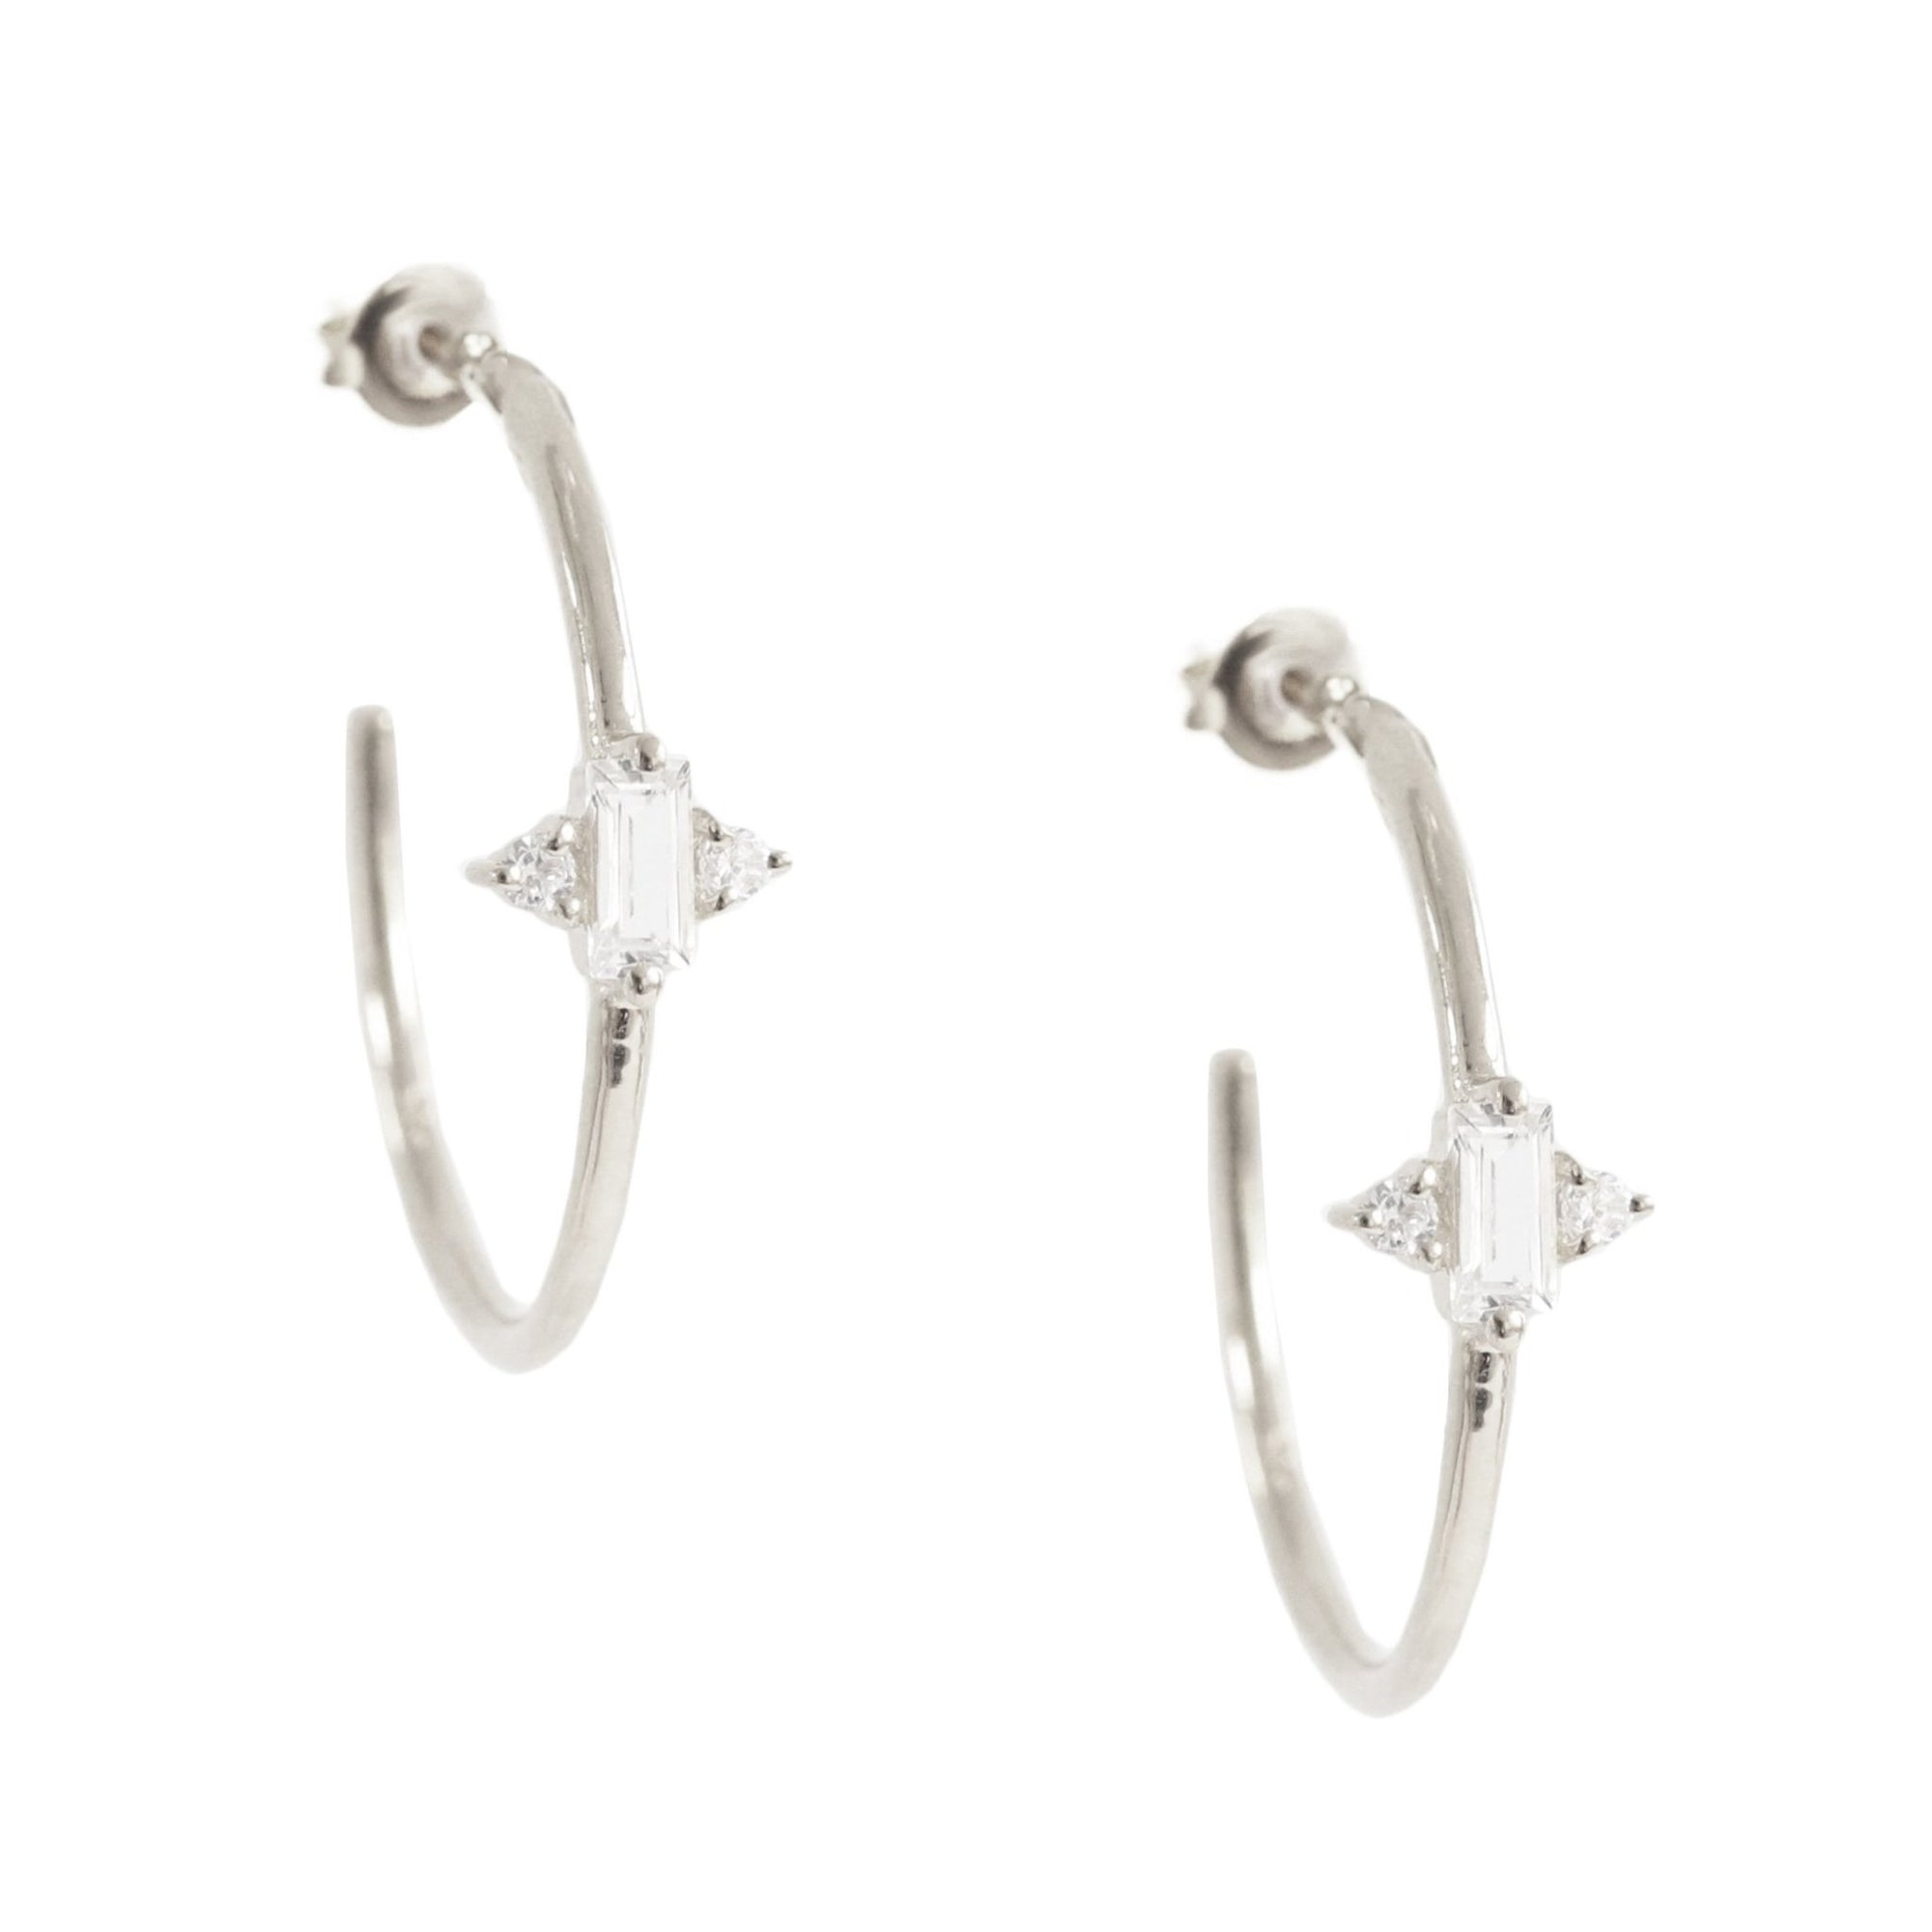 Loyal Prism Hoops - White Topaz, Cubic Zirconia & Silver - SO PRETTY CARA COTTER